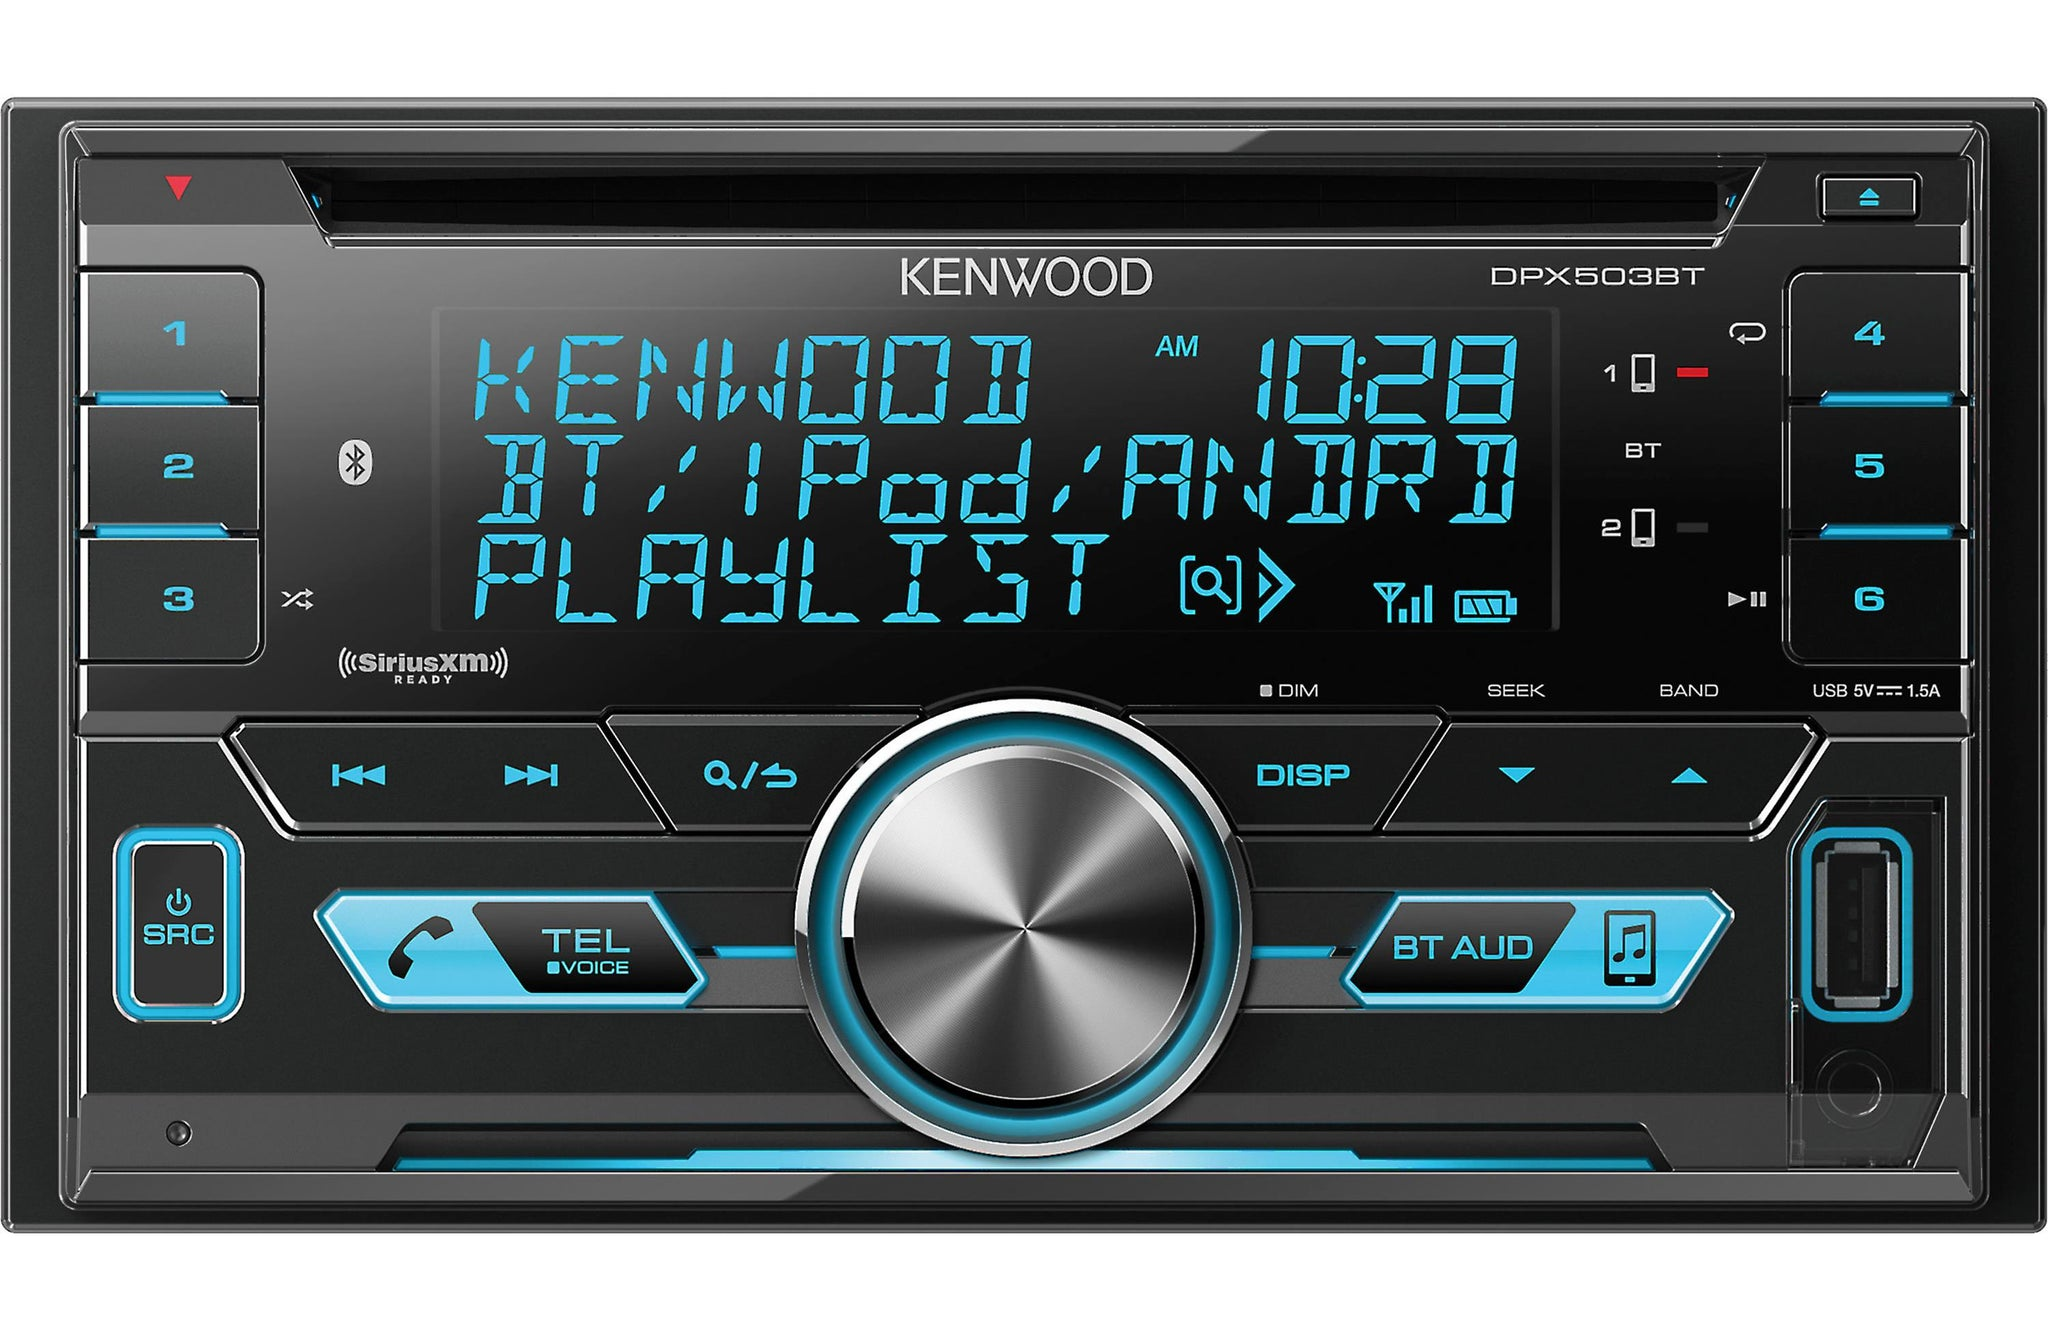 Kenwood DPX503BT Double DIN SiriusXM Ready Bluetooth In-Dash CD/AM/FM Car Stereo Receiver